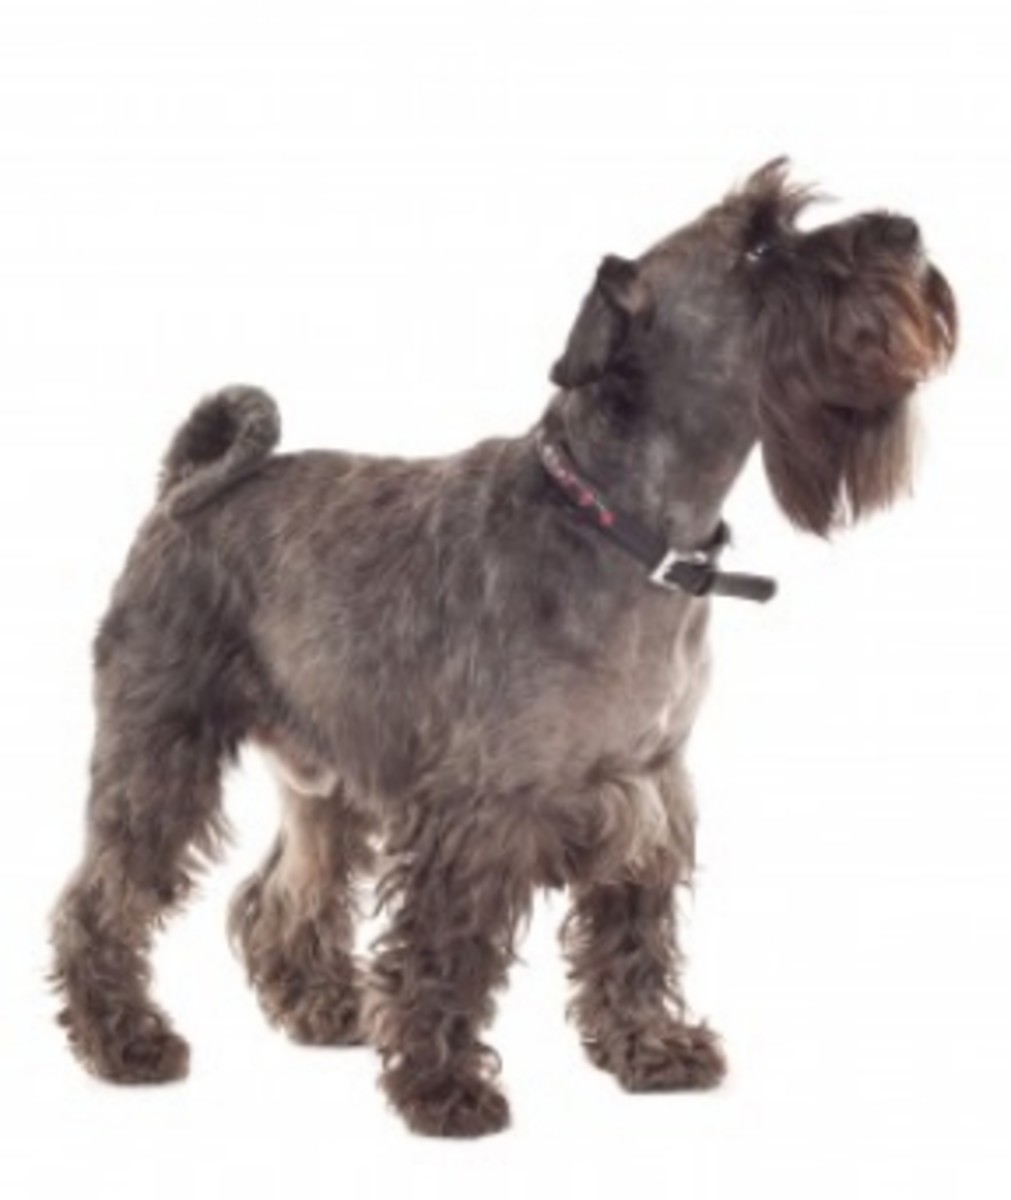 This is a salt-and-pepper schnauzer with an undocked tail.